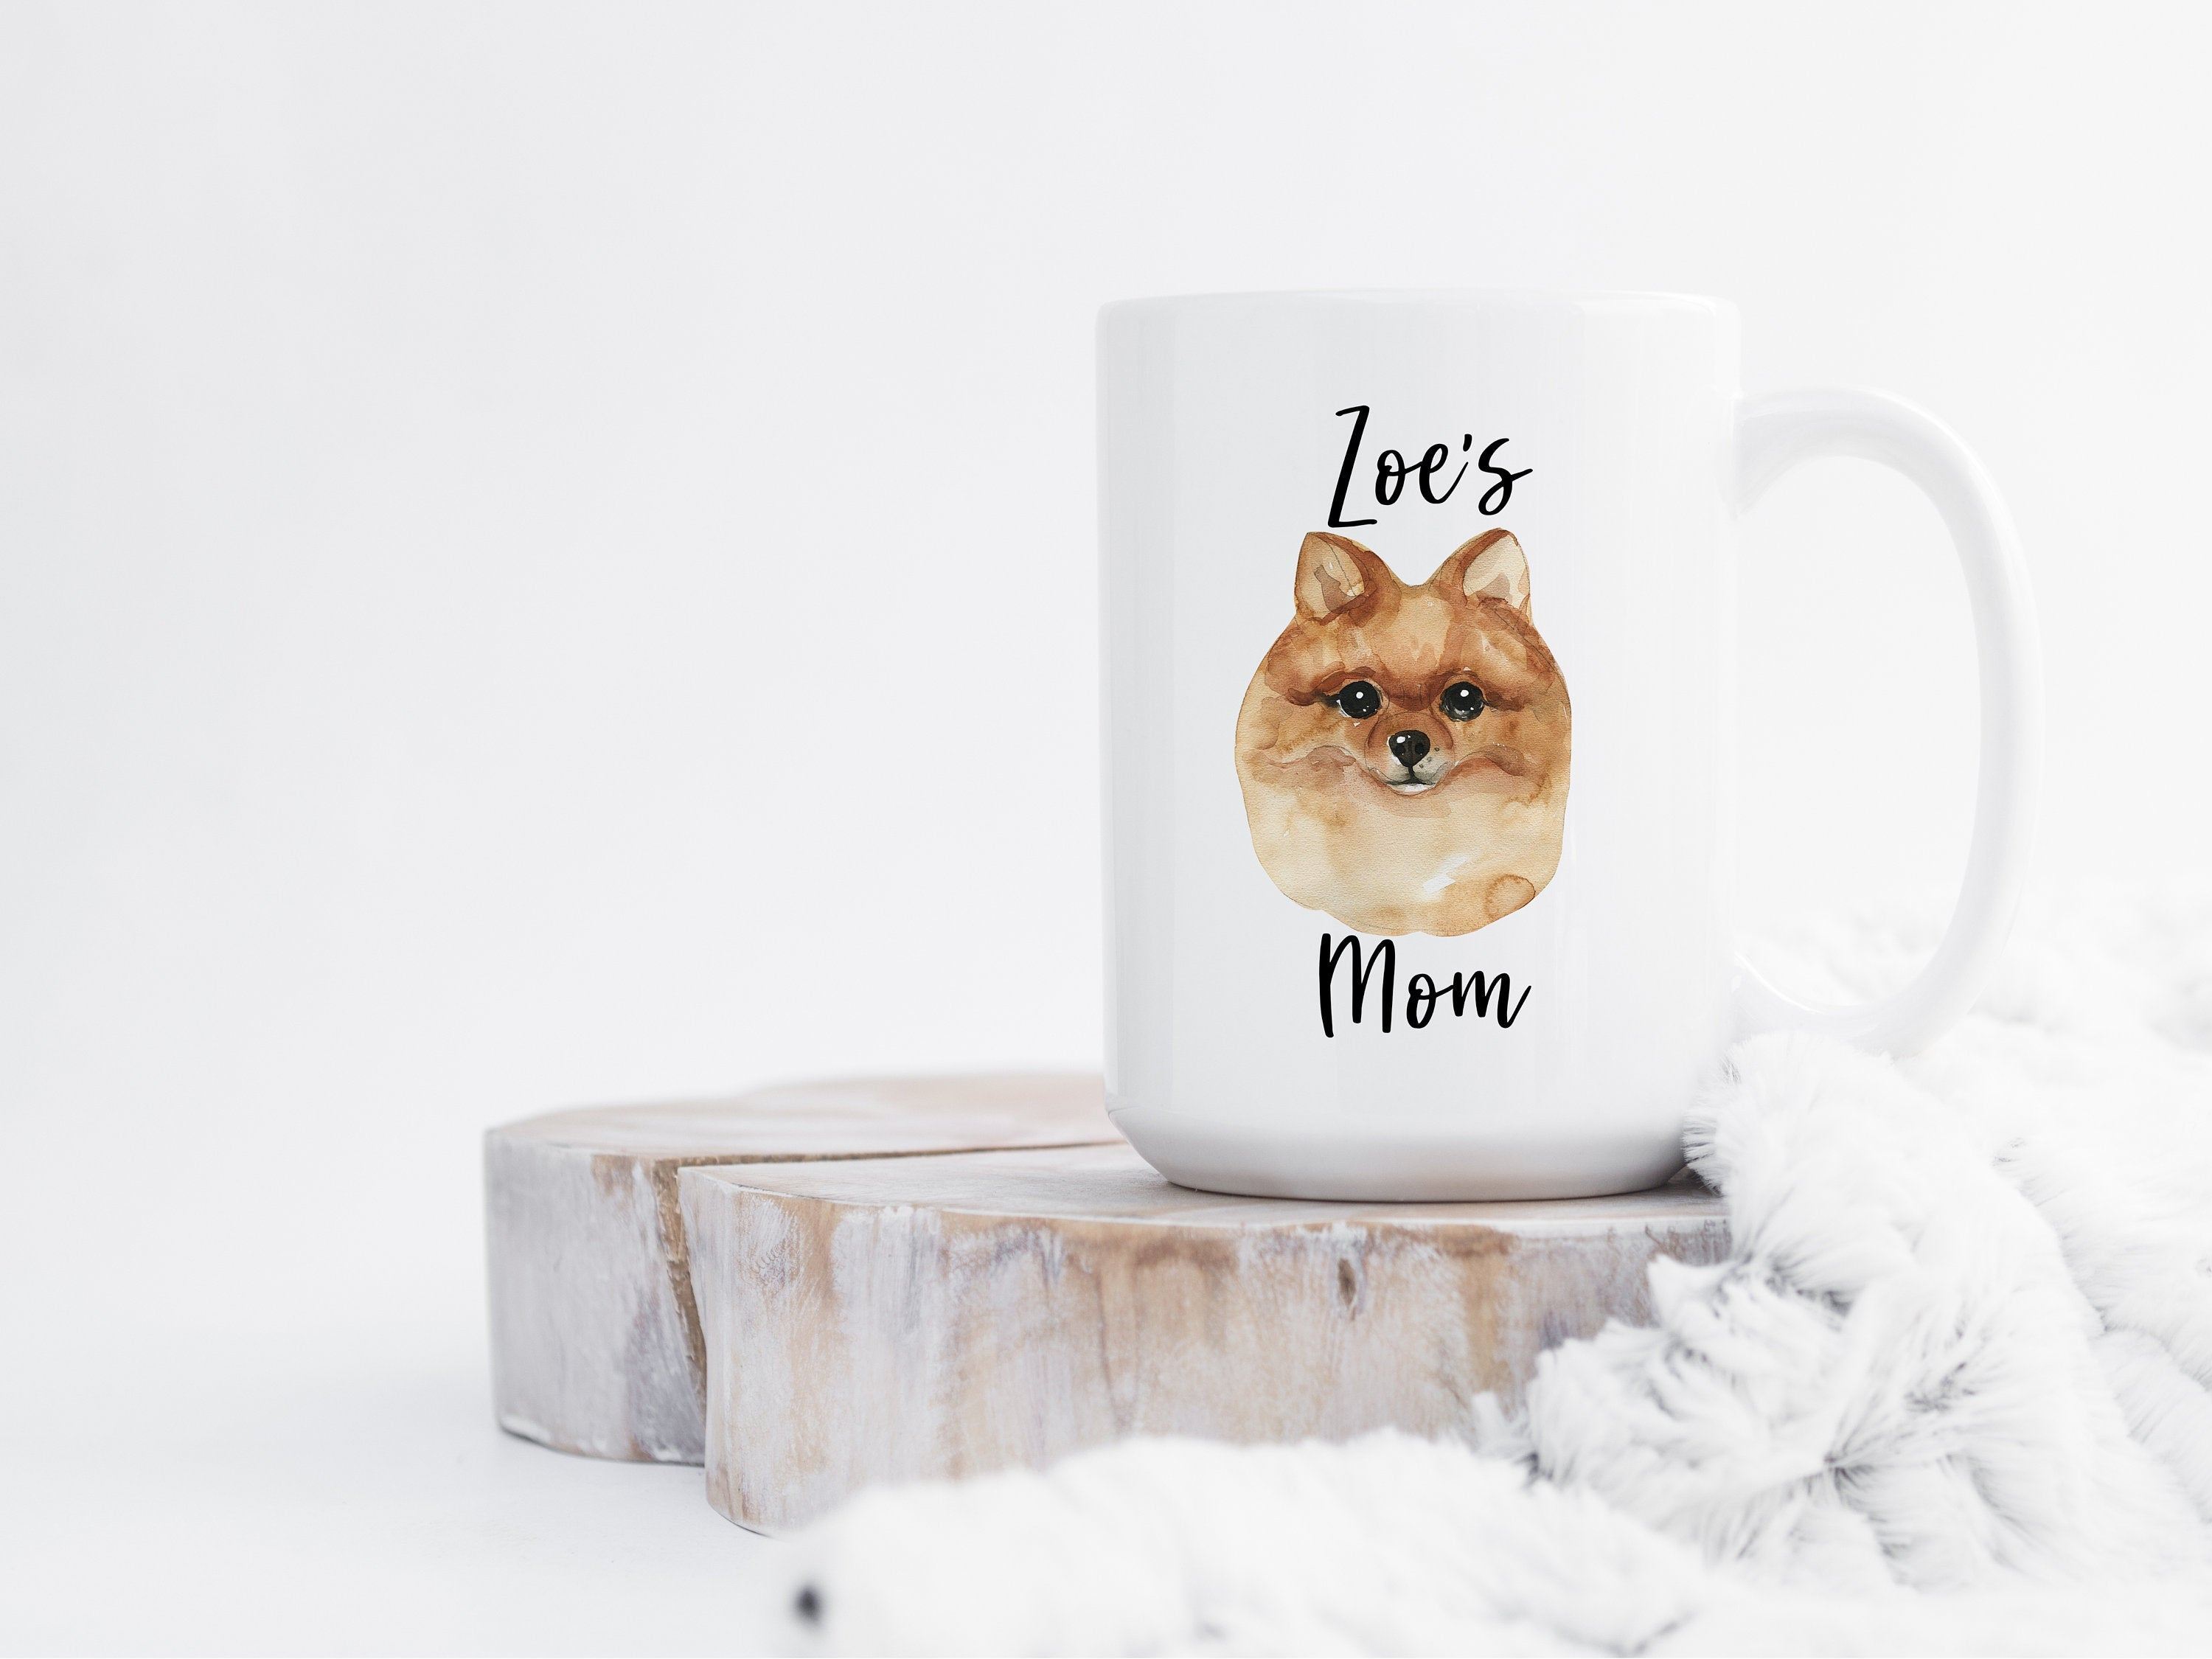 Personalized Dog Mom Gift, Custom Pomeranian Mug, Dog Lover Gift, Gifts for Dog Mom, Personalized Dog Coffee Mug, Cute Pet Gift for Her S062